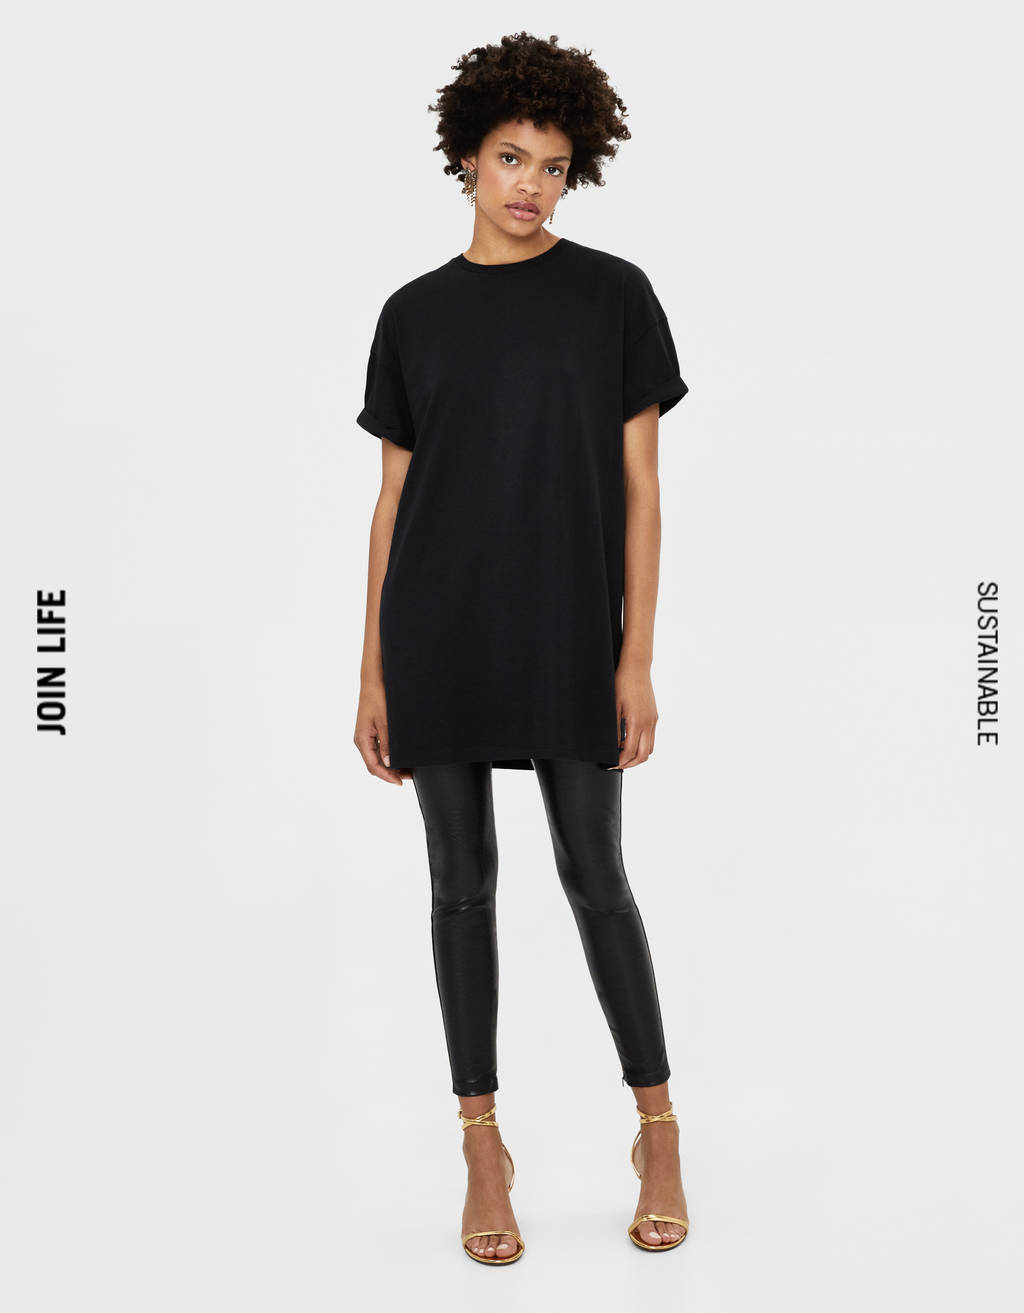 Longline short sleeve T-shirt